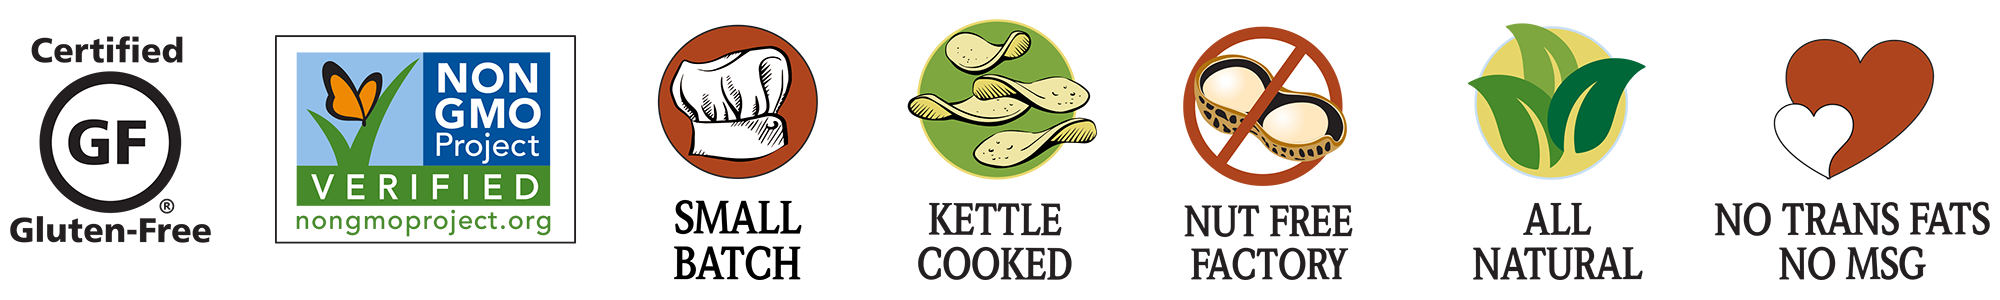 certified gluten free, non-GMO verified, small batch, kettle cooked, nut free factory (peanuts and tree nuts), all natural, no trans fats, no MSG